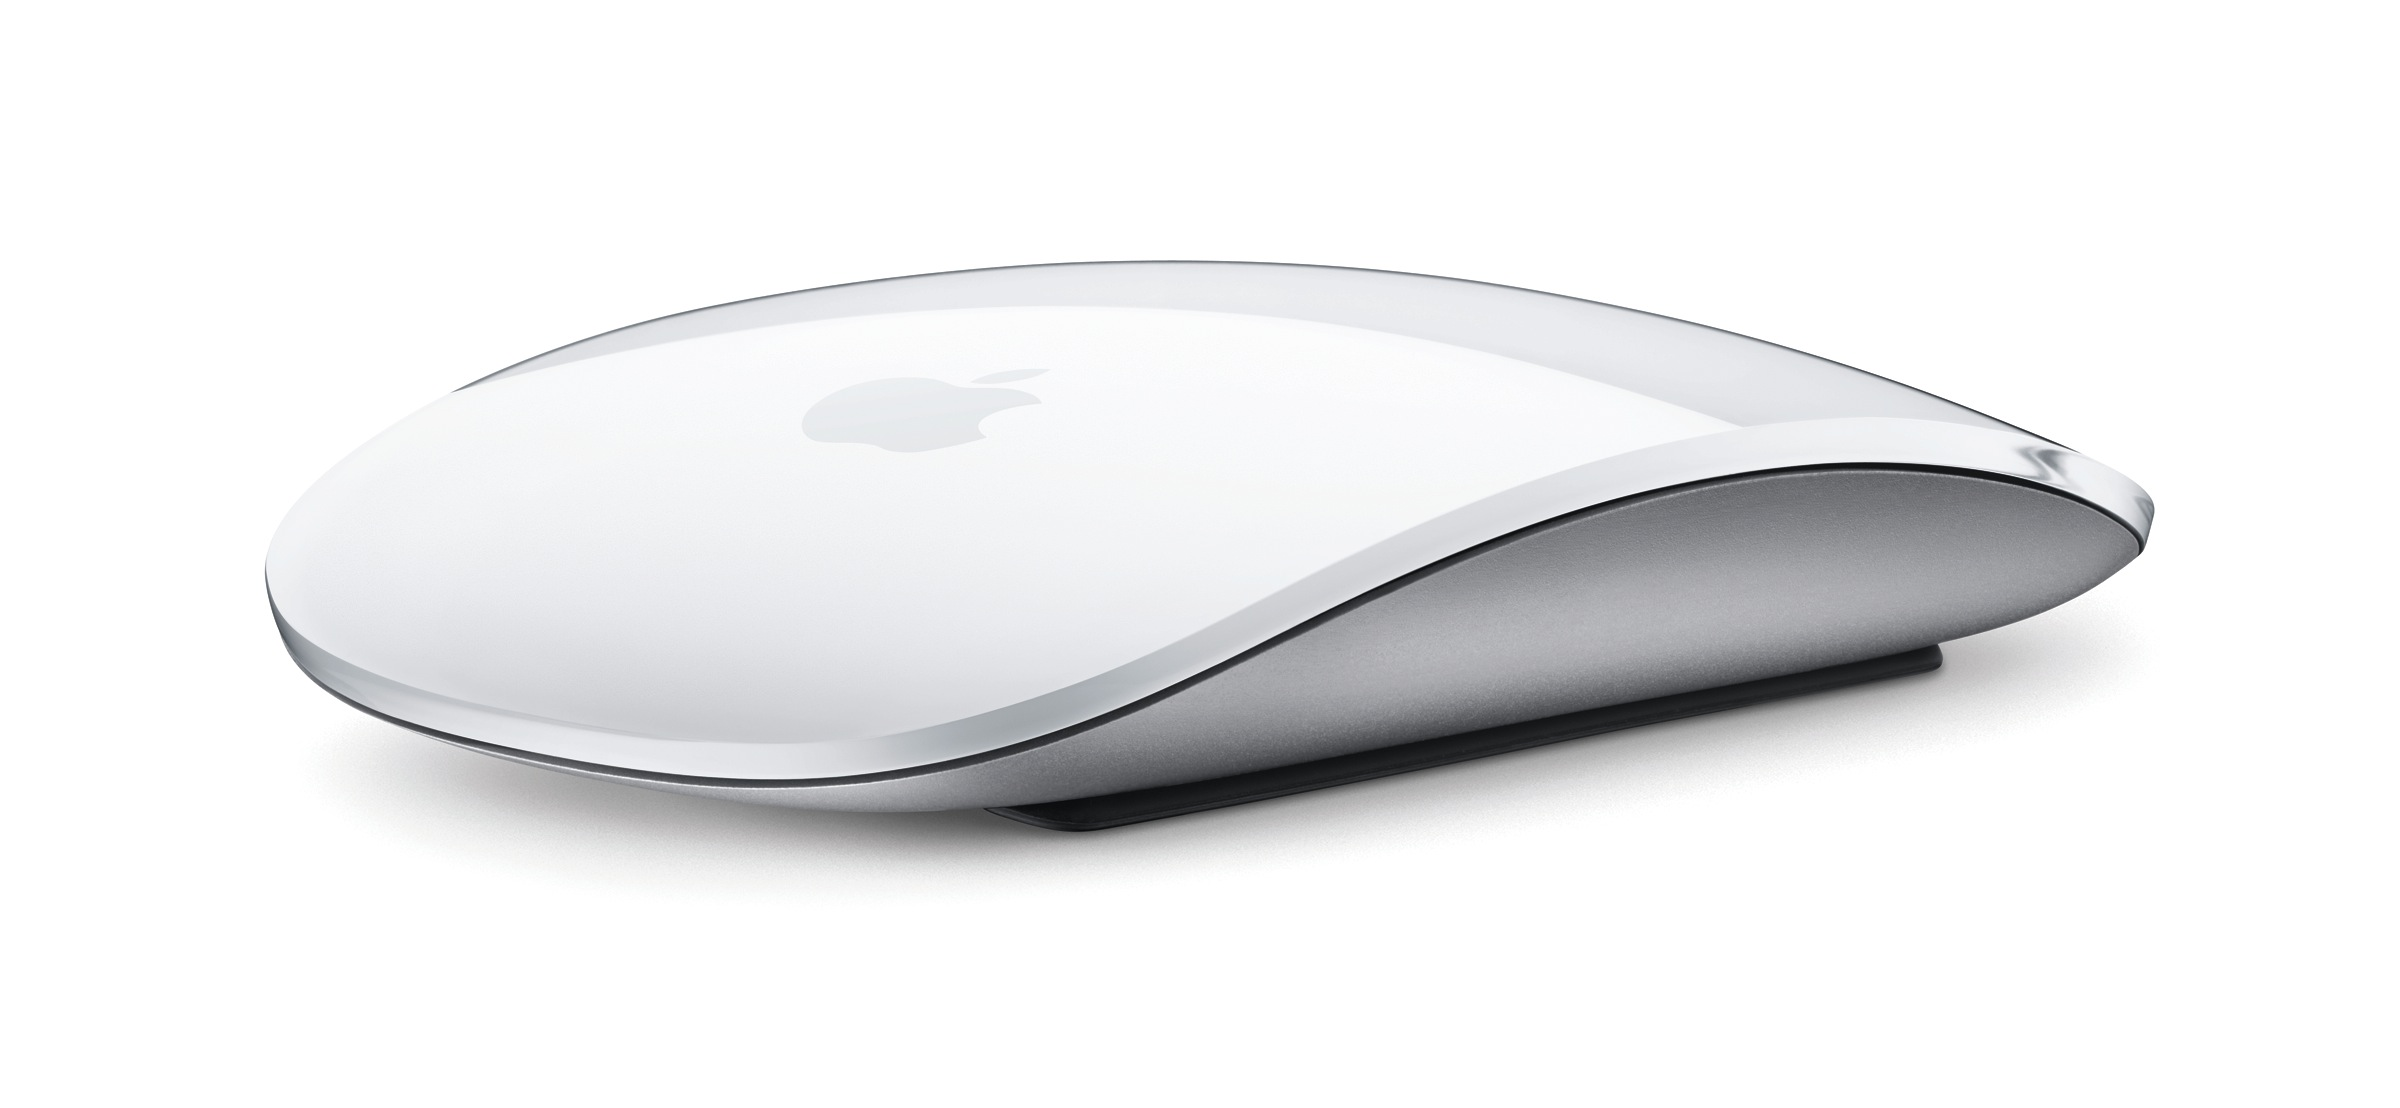 Apple Magic Mouse 2 - miglior mouse